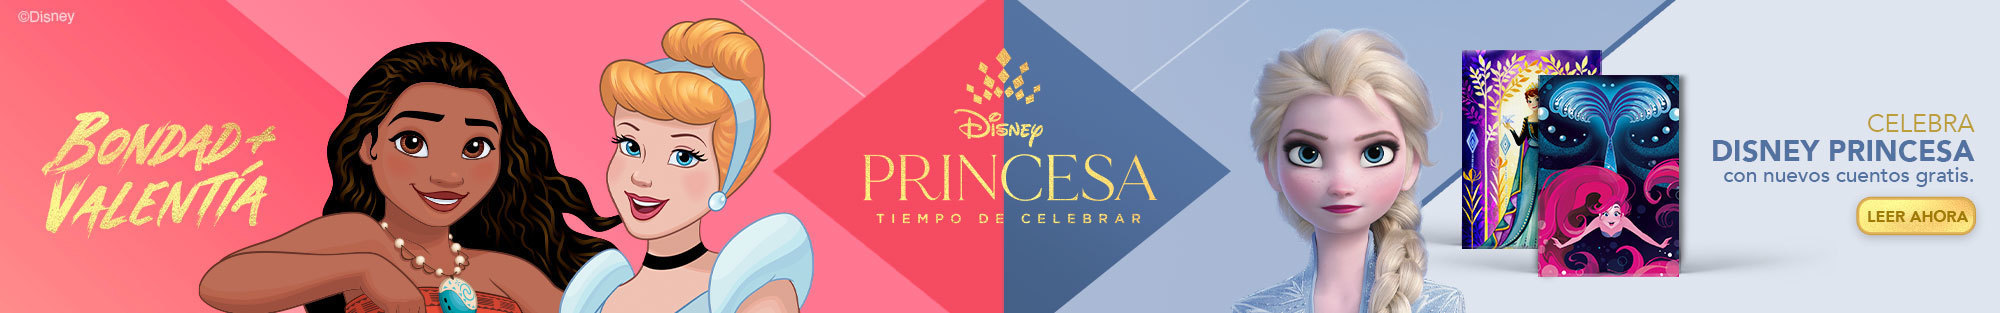 Mid_ShopDisney_Apr21_Princesas Ebooks Home Princesas